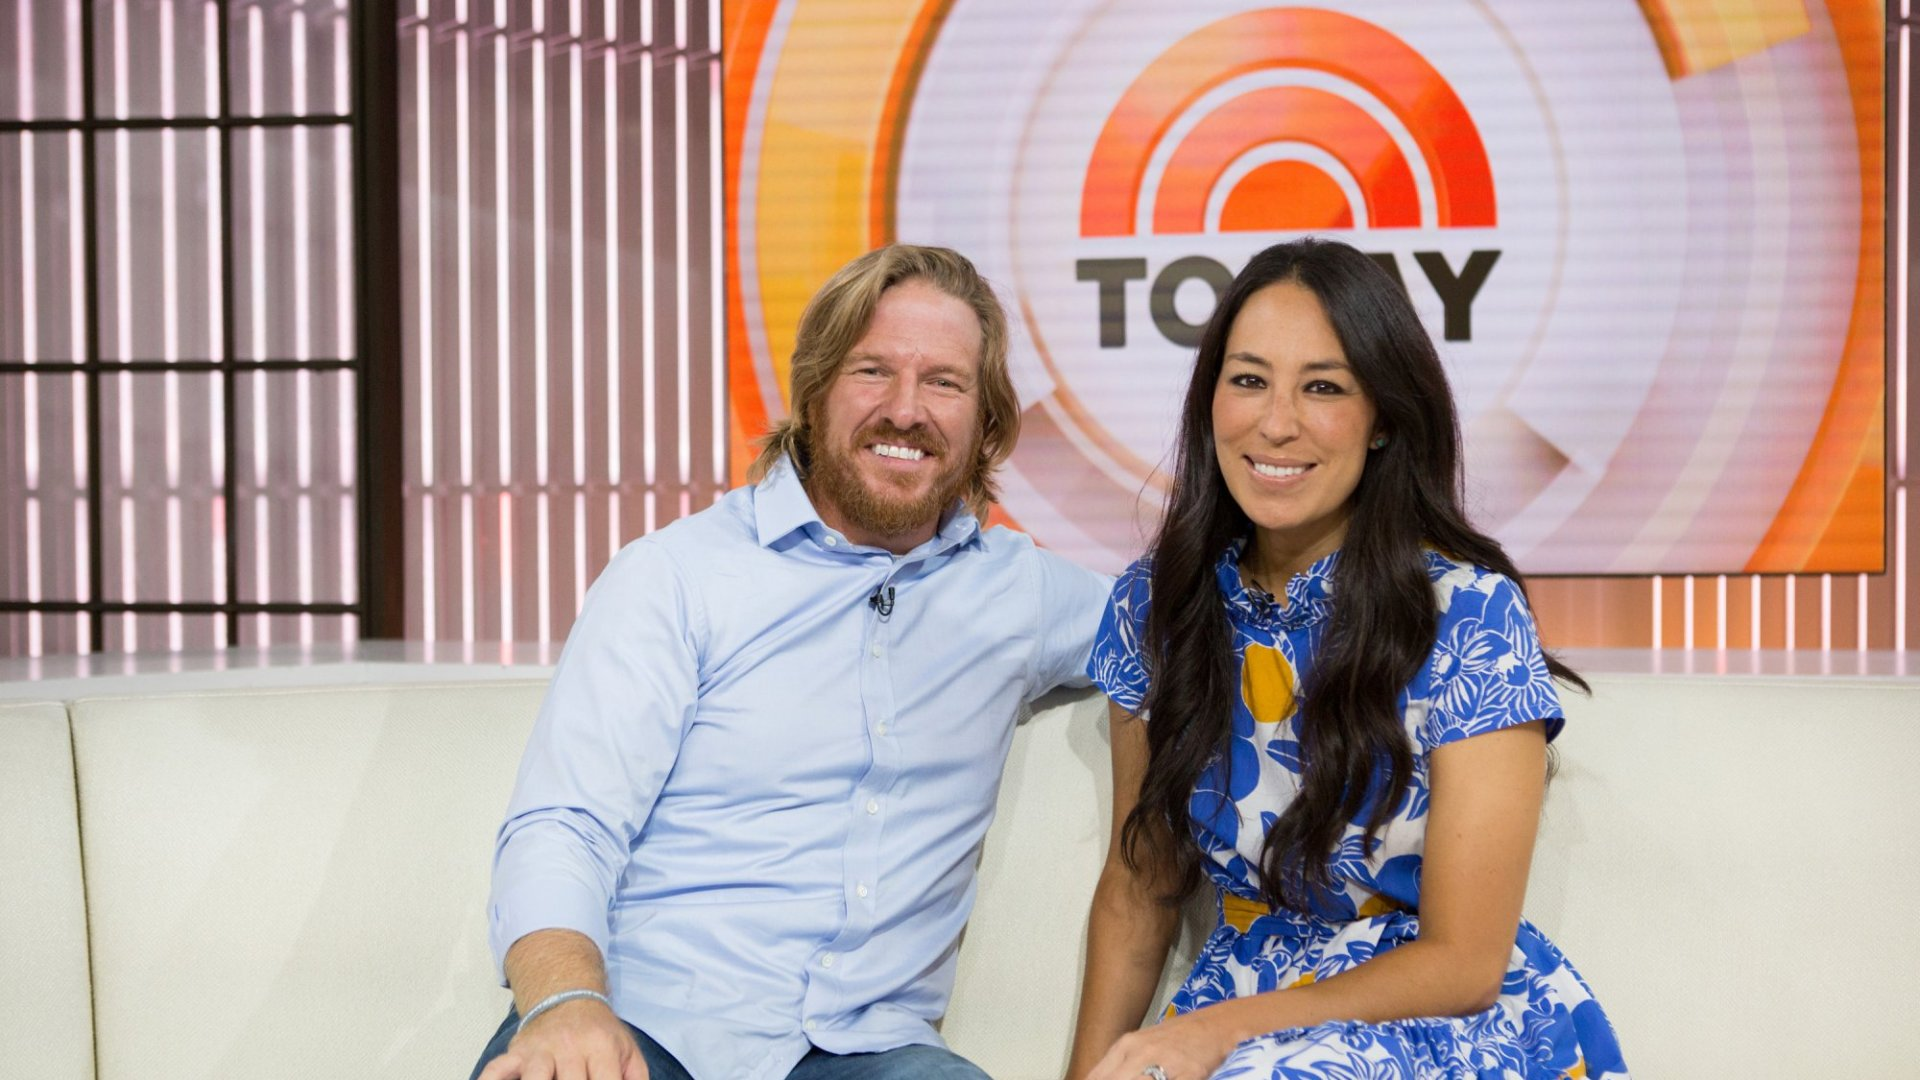 4 Reasons Why the Magnolia Brand by Chip and Joanna Gaines Is So Unstoppable